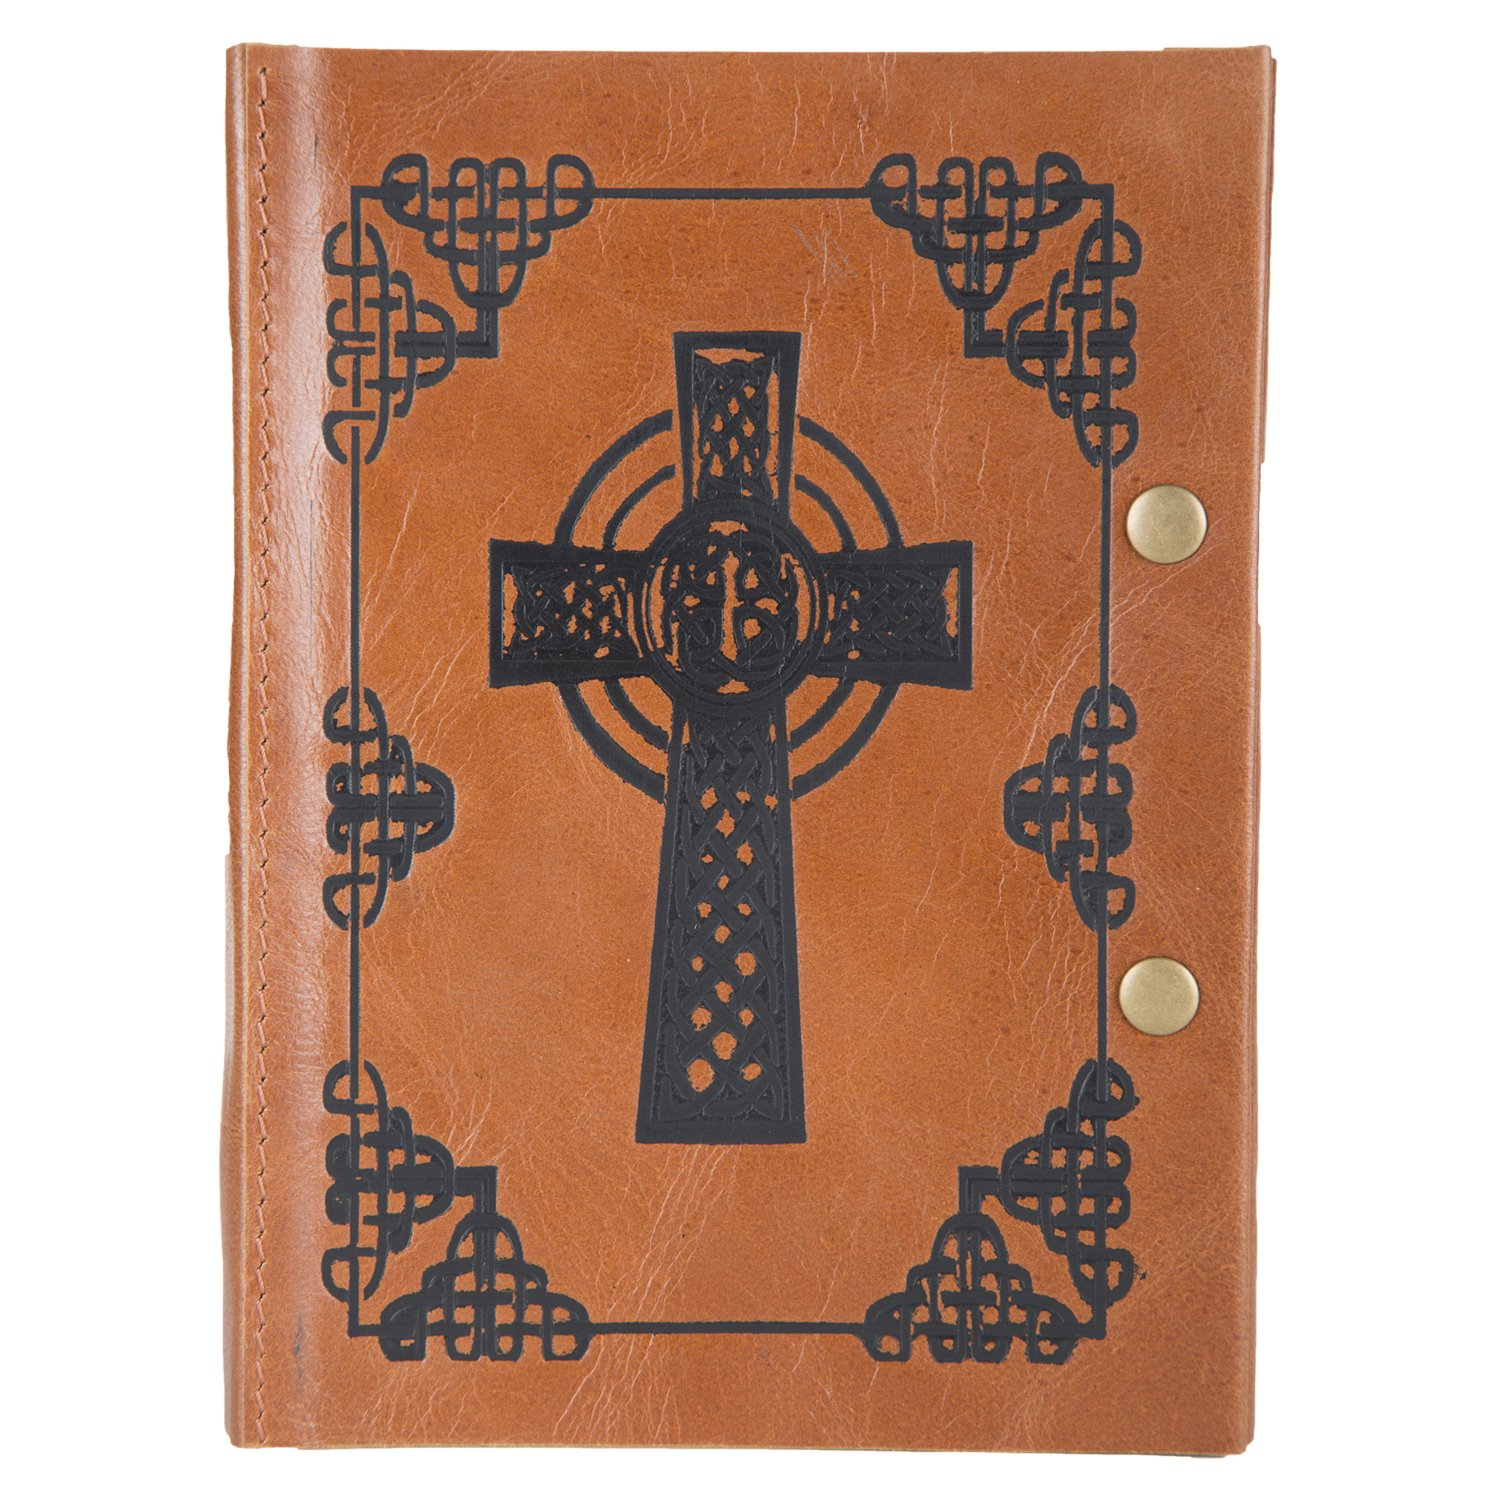 Leather Journal by Enew Leather Writing Cross Journal Notebook, Vintage Leather Handmade Diary Blank Unruled Pages Daily Notepad Travel to Write,